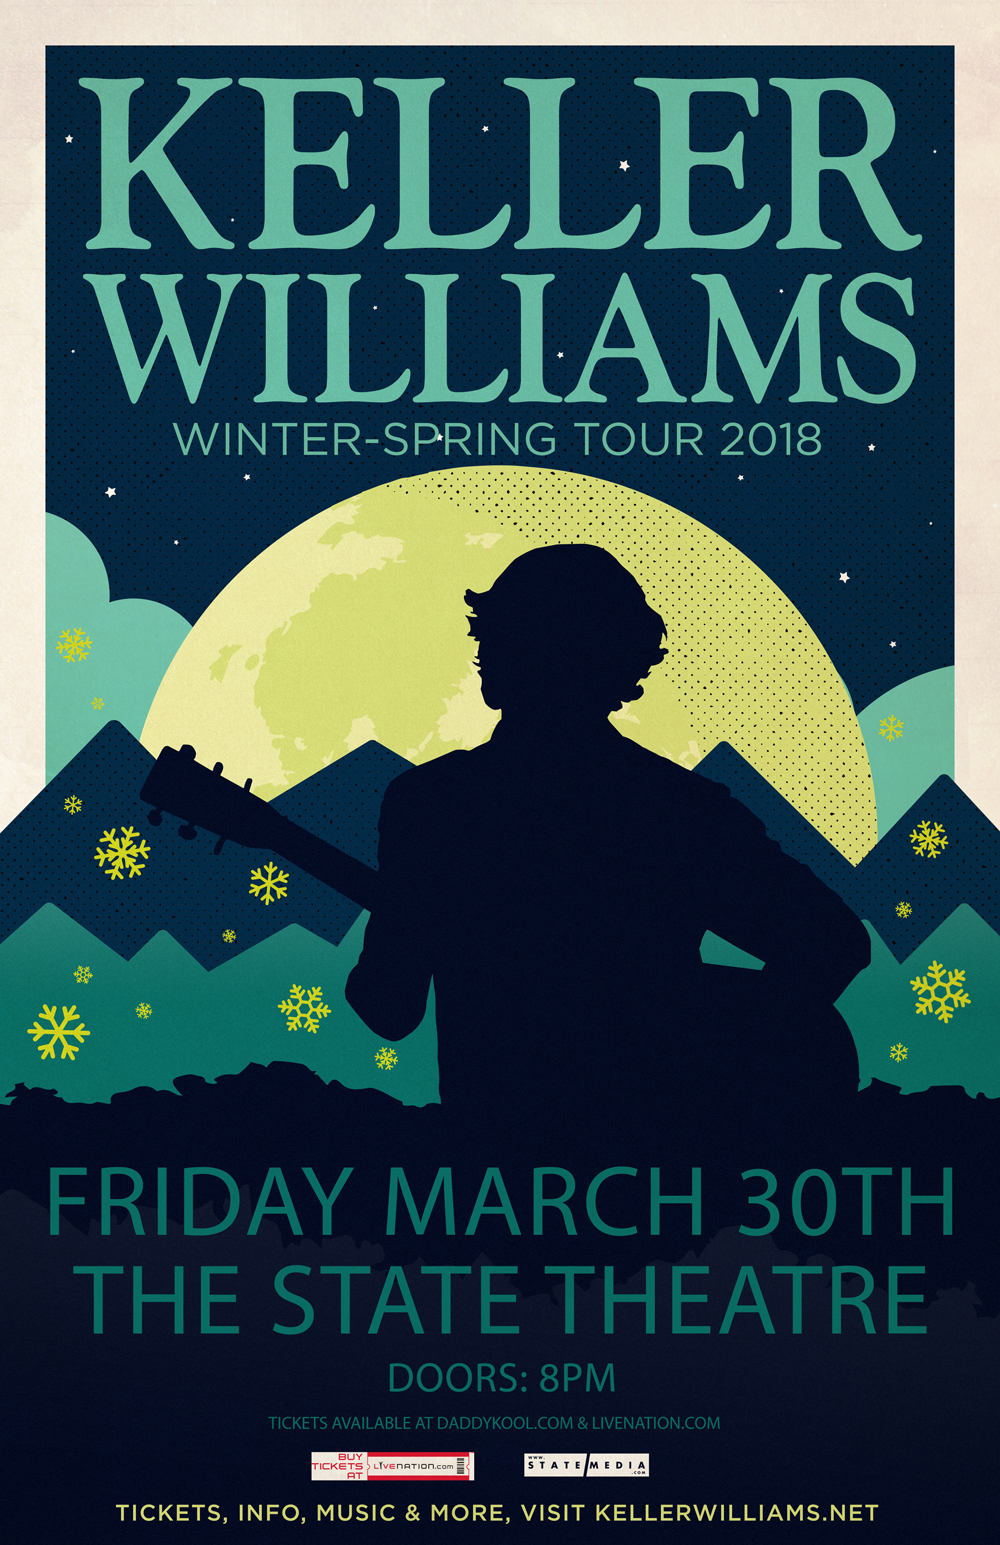 Keller Williams winter tour 2018 state theatre